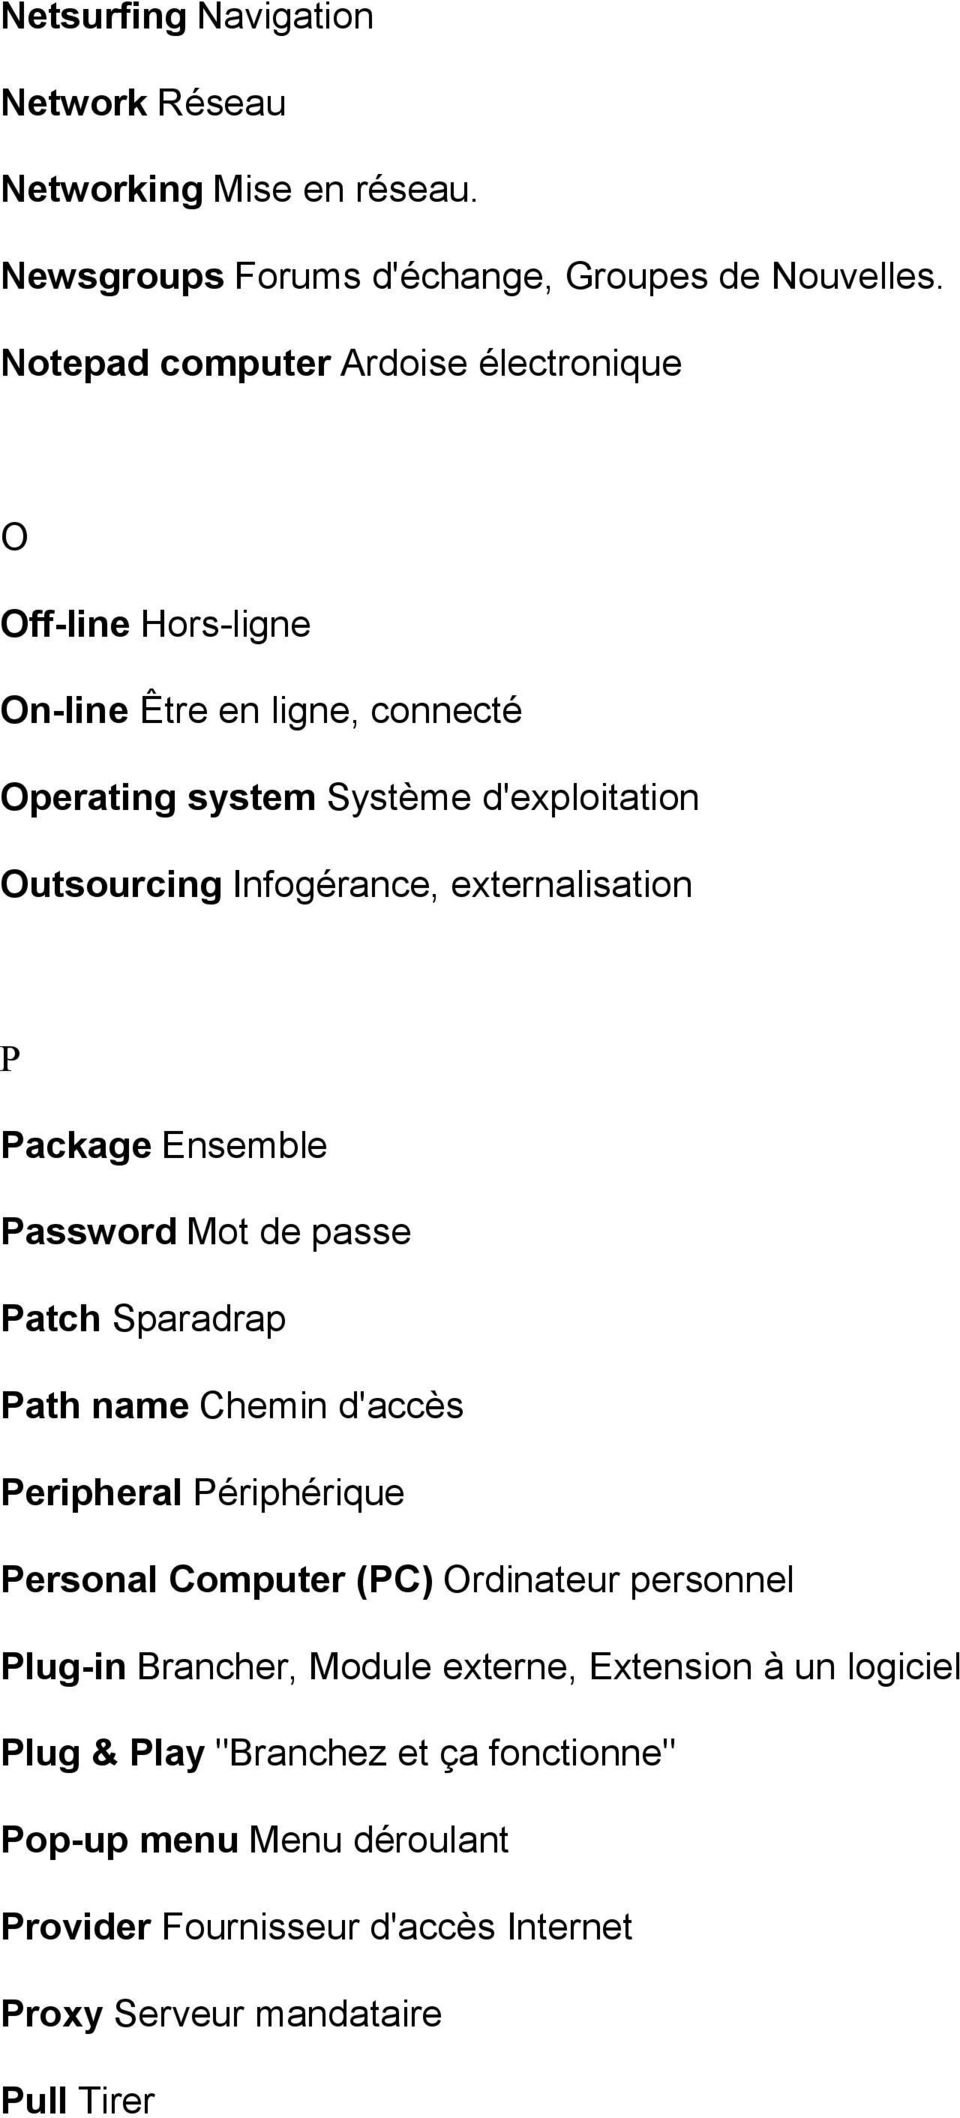 externalisation P Package Ensemble Password Mot de passe Patch Sparadrap Path name Chemin d'accès Peripheral Périphérique Personal Computer (PC) Ordinateur